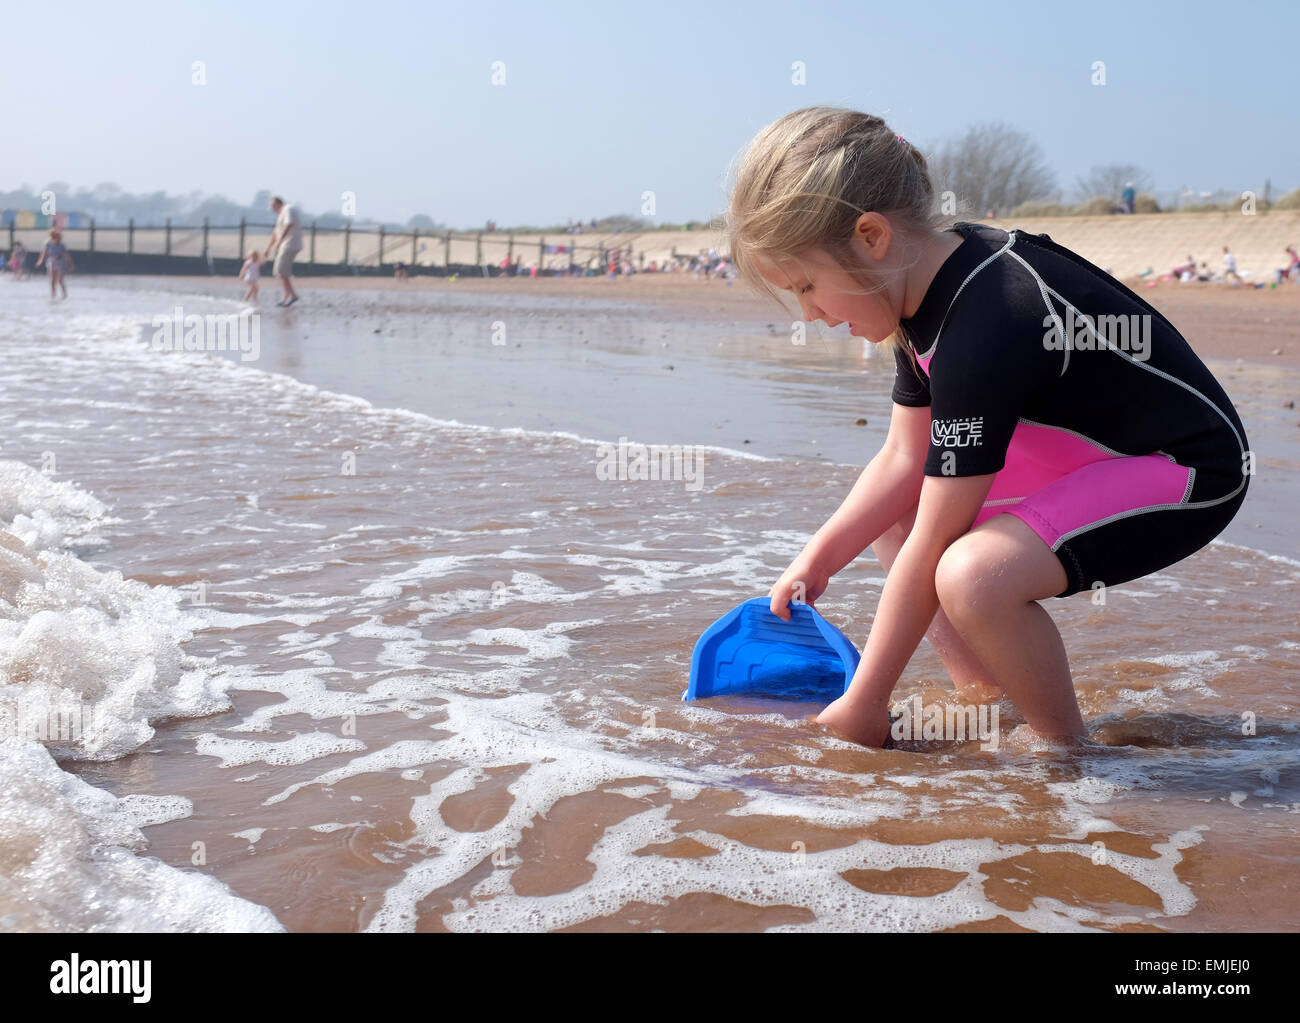 A young girl in a wetsuit collecting water with a bucket on the beach UK - Stock Image